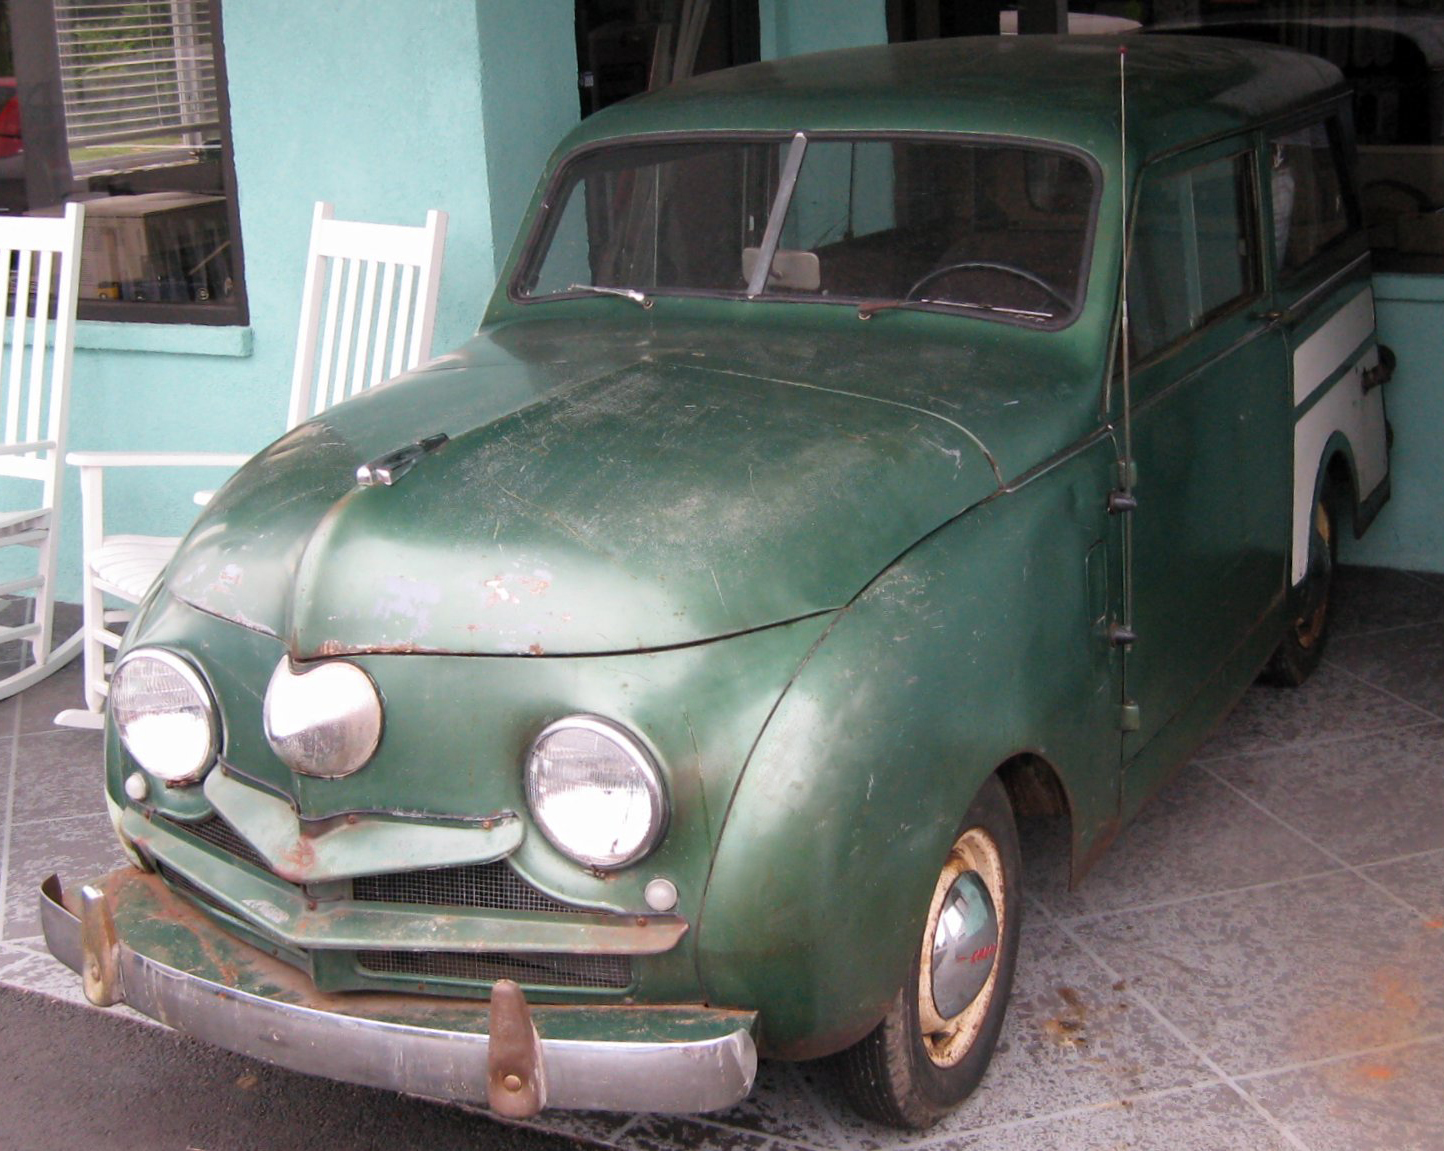 File:1948 Crosley Stat...